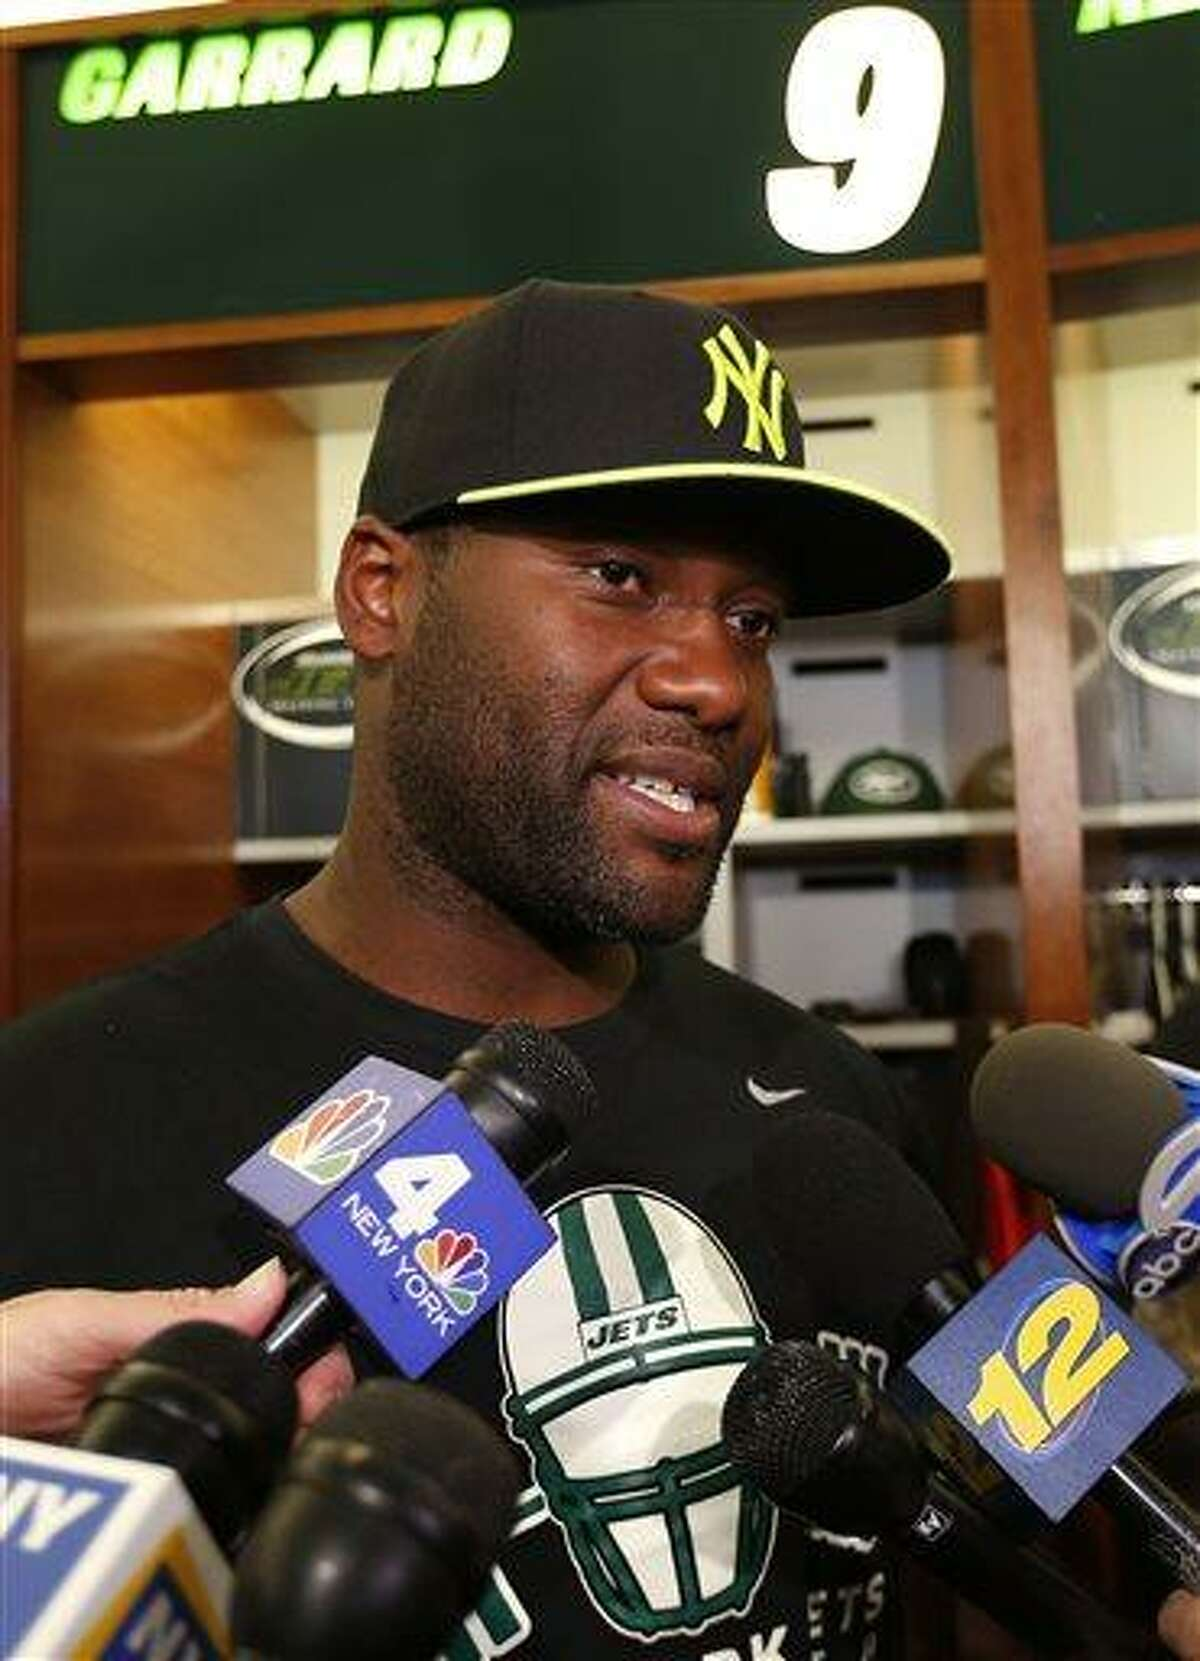 FILE - In this May 2, 2013, file photo, New York Jets quarterback David Garrard talks to reporters during a locker room availability at the team's NFL practice facility in Florham Park, N.J. A person familiar with the decision says Garrard plans to retire because of lingering knee issues, leaving the Jets one fewer quarterback in their open competition. The 35-year-old Garrard was signed in March to provide veteran competition for Mark Sanchez. But Garrard, who hadn't played in a regular-season game in the NFL since 2010 because of injuries, plans to step away because of knee troubles. (AP Photo/Rich Schultz, File)